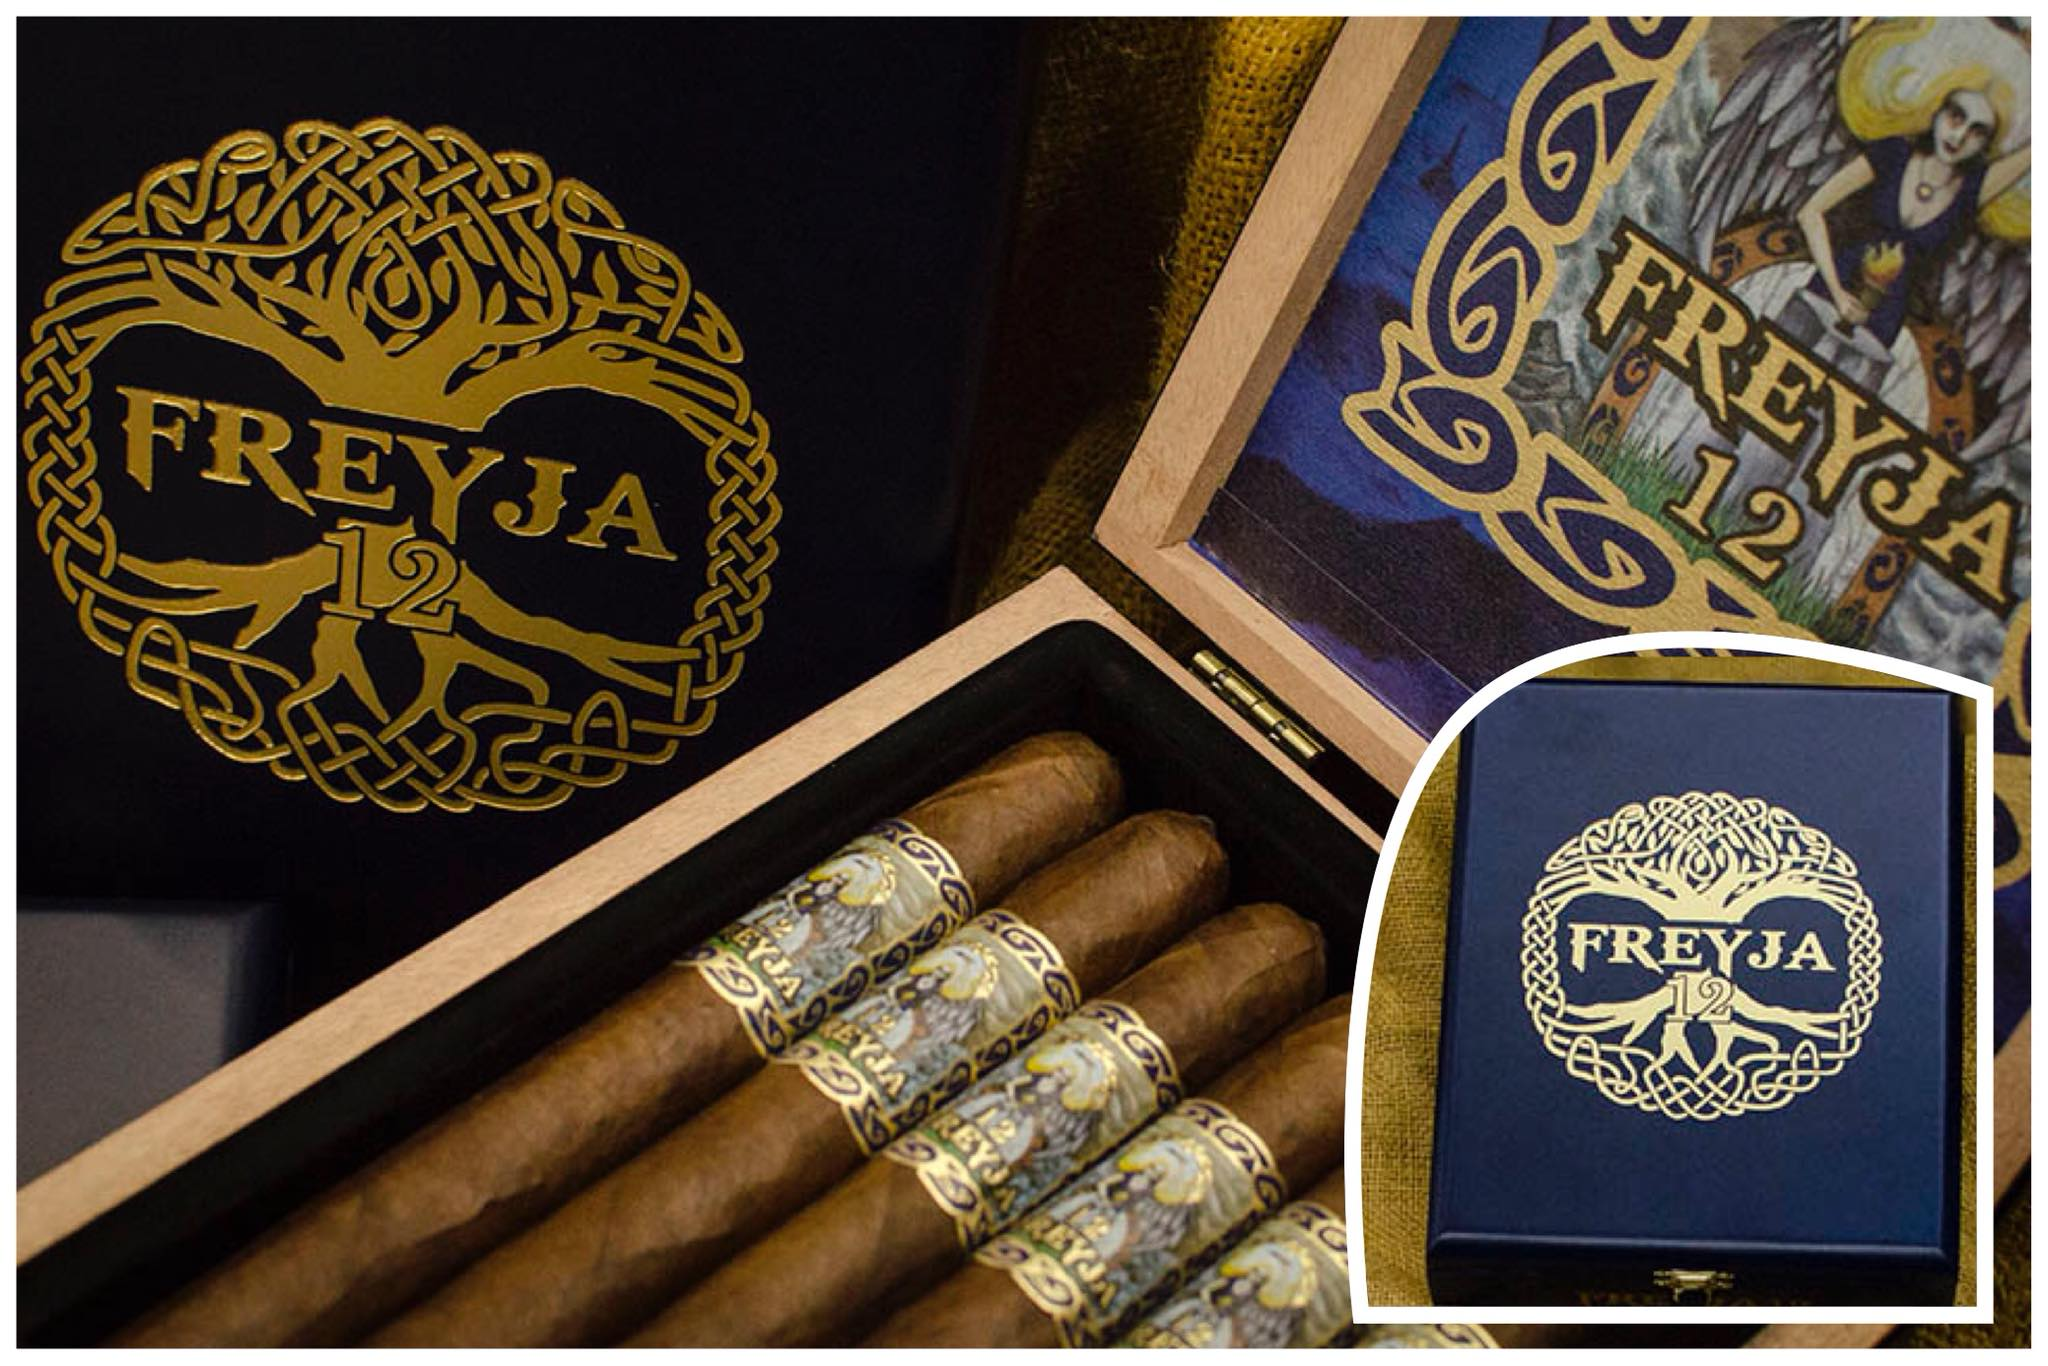 Cigar News: Las Cumbres Tabaco to Release Freyja 12